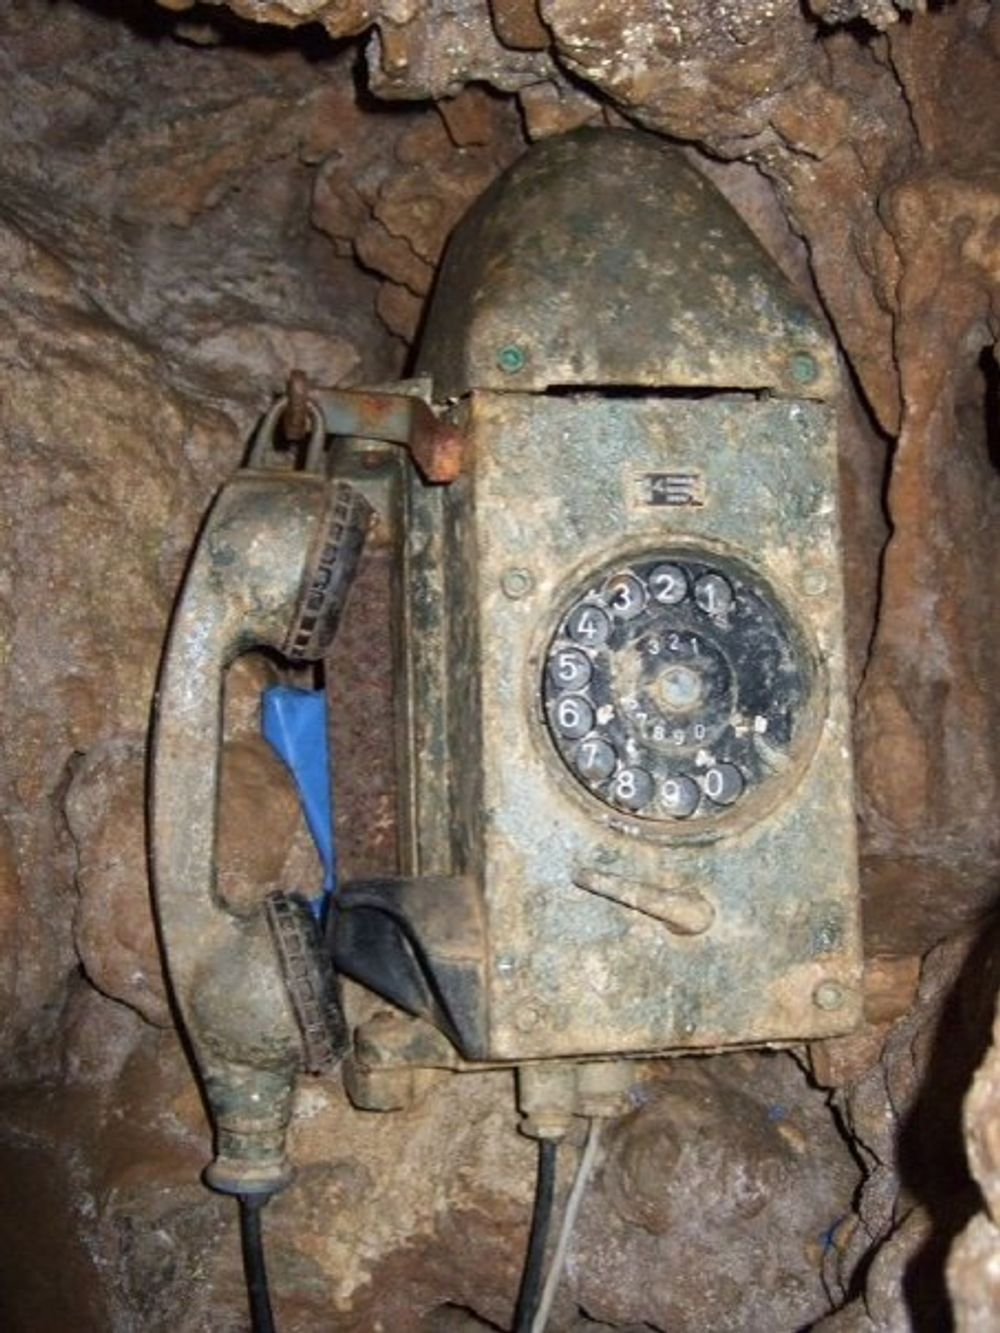 Old Vintage Phone in the Caves of Jeita